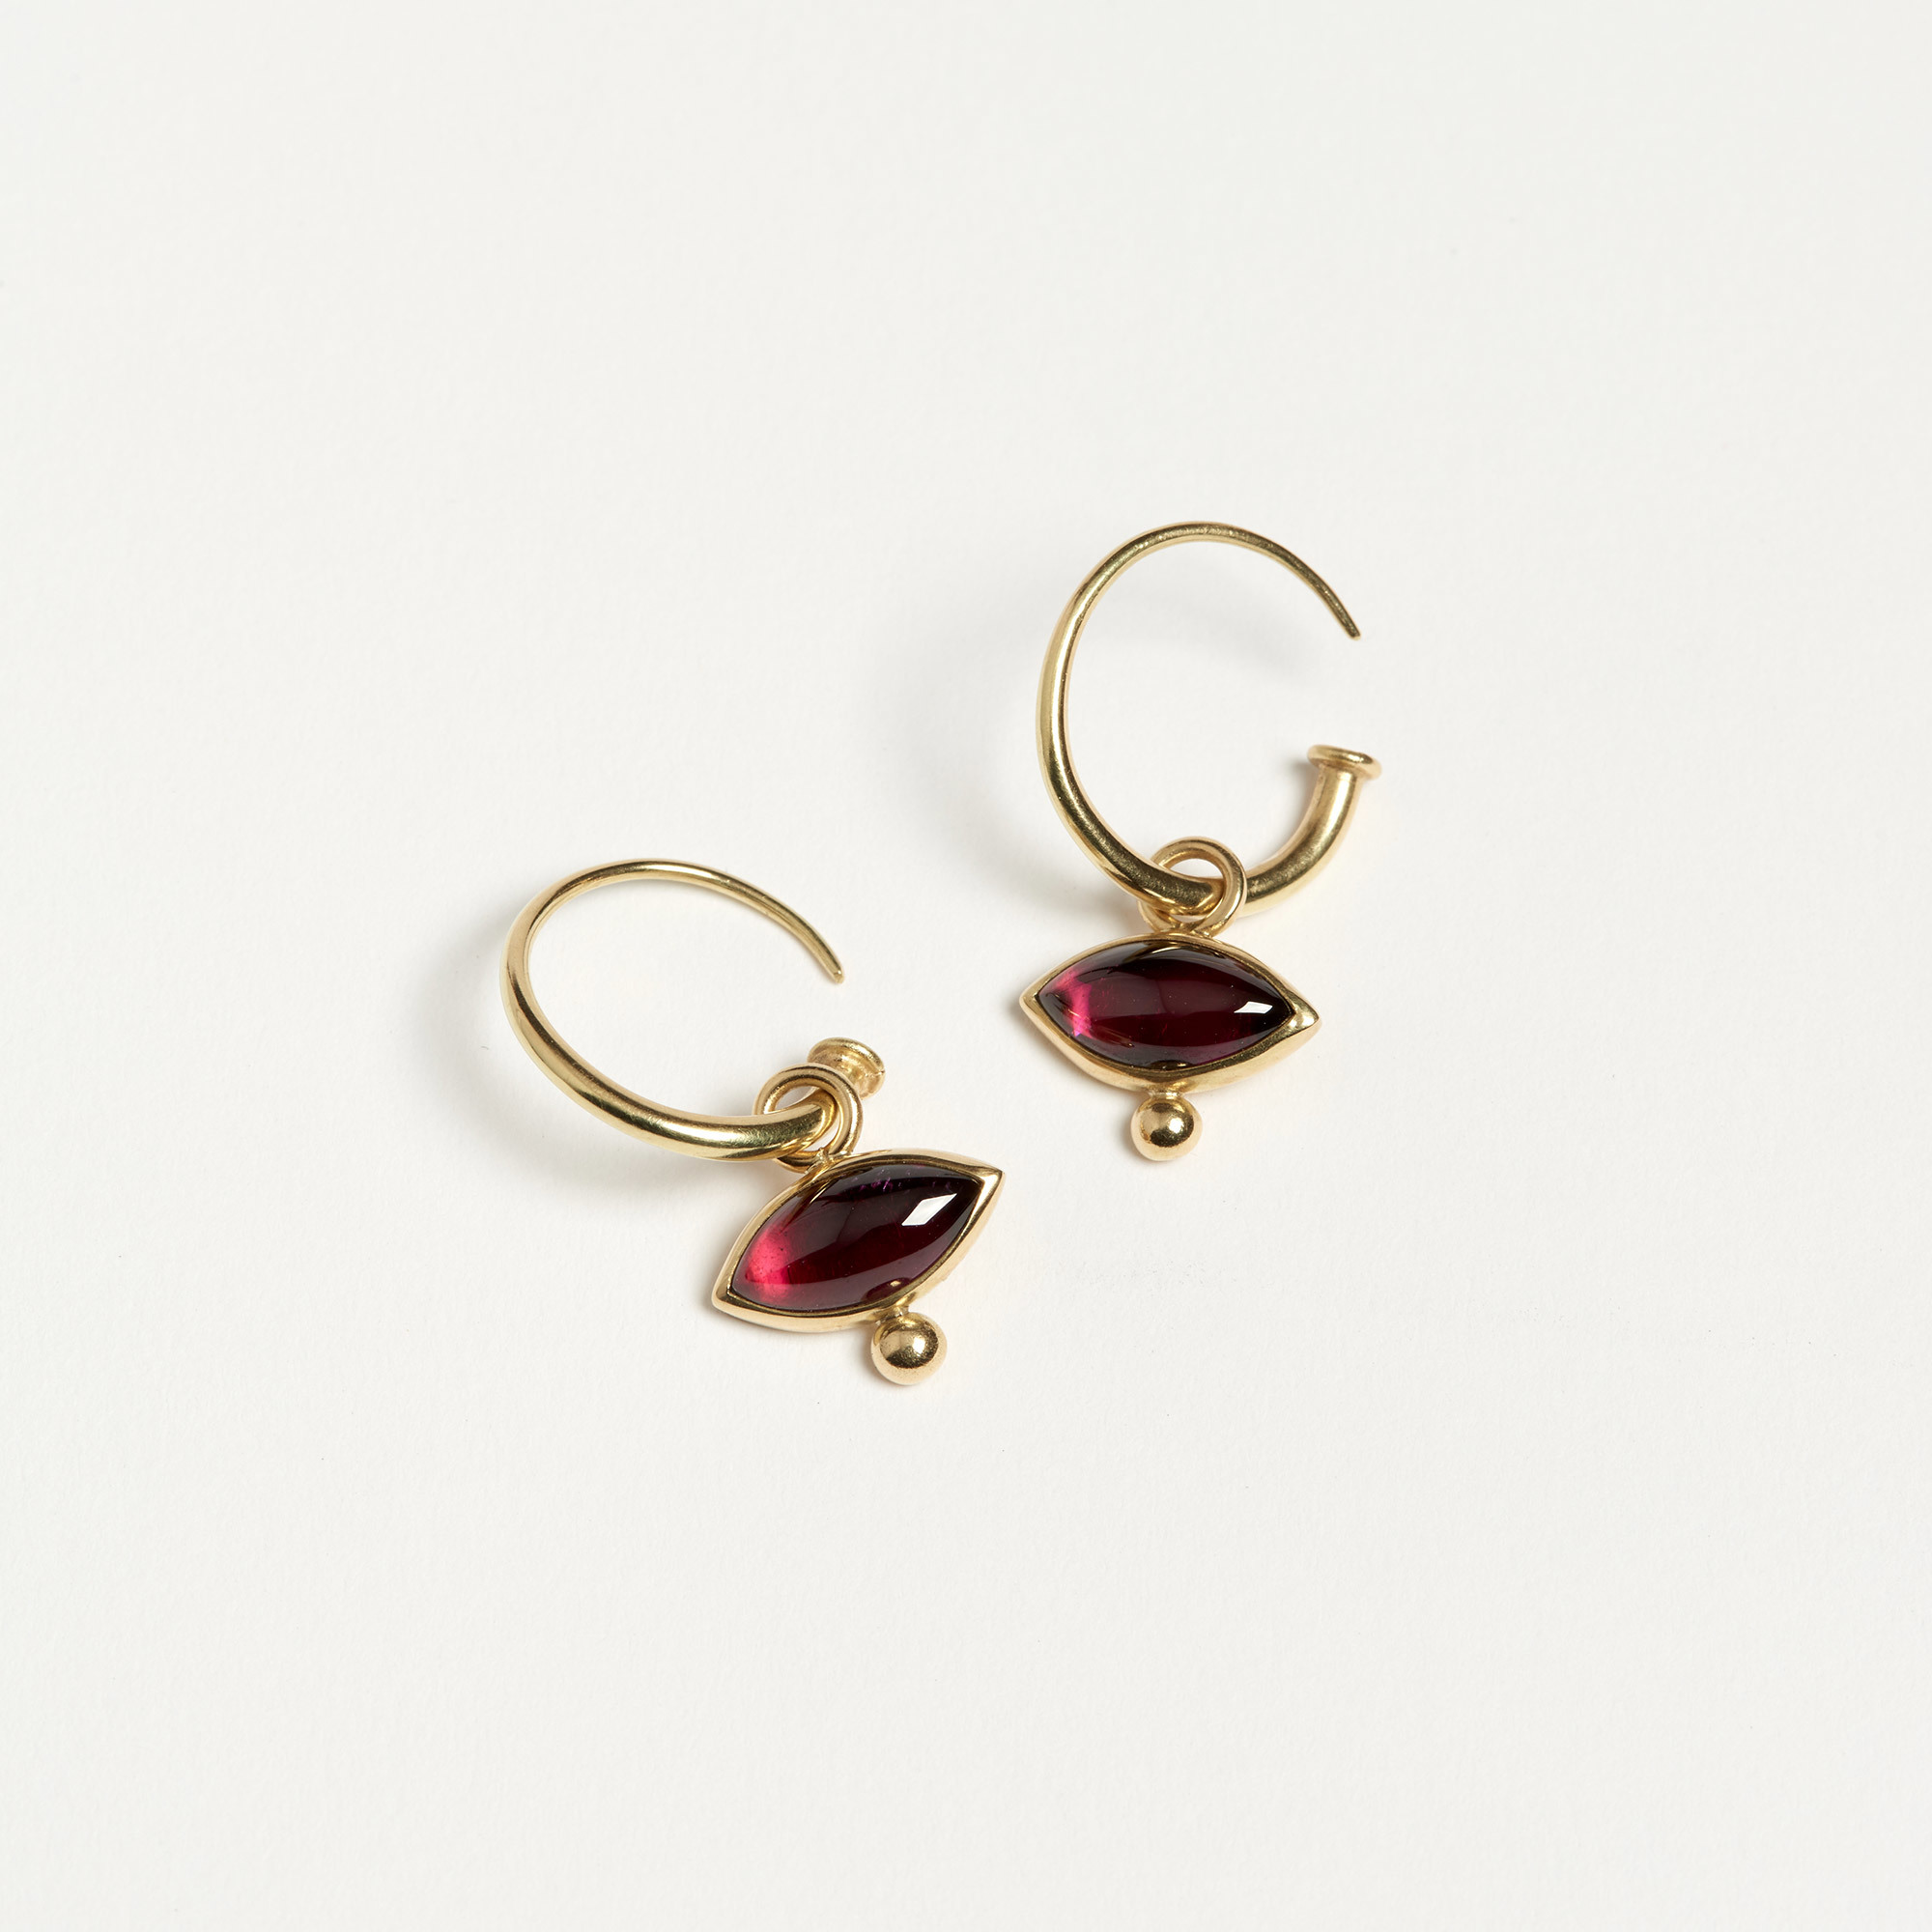 deep bold a rhodolite color earrings right pin red in age wine garnet at the